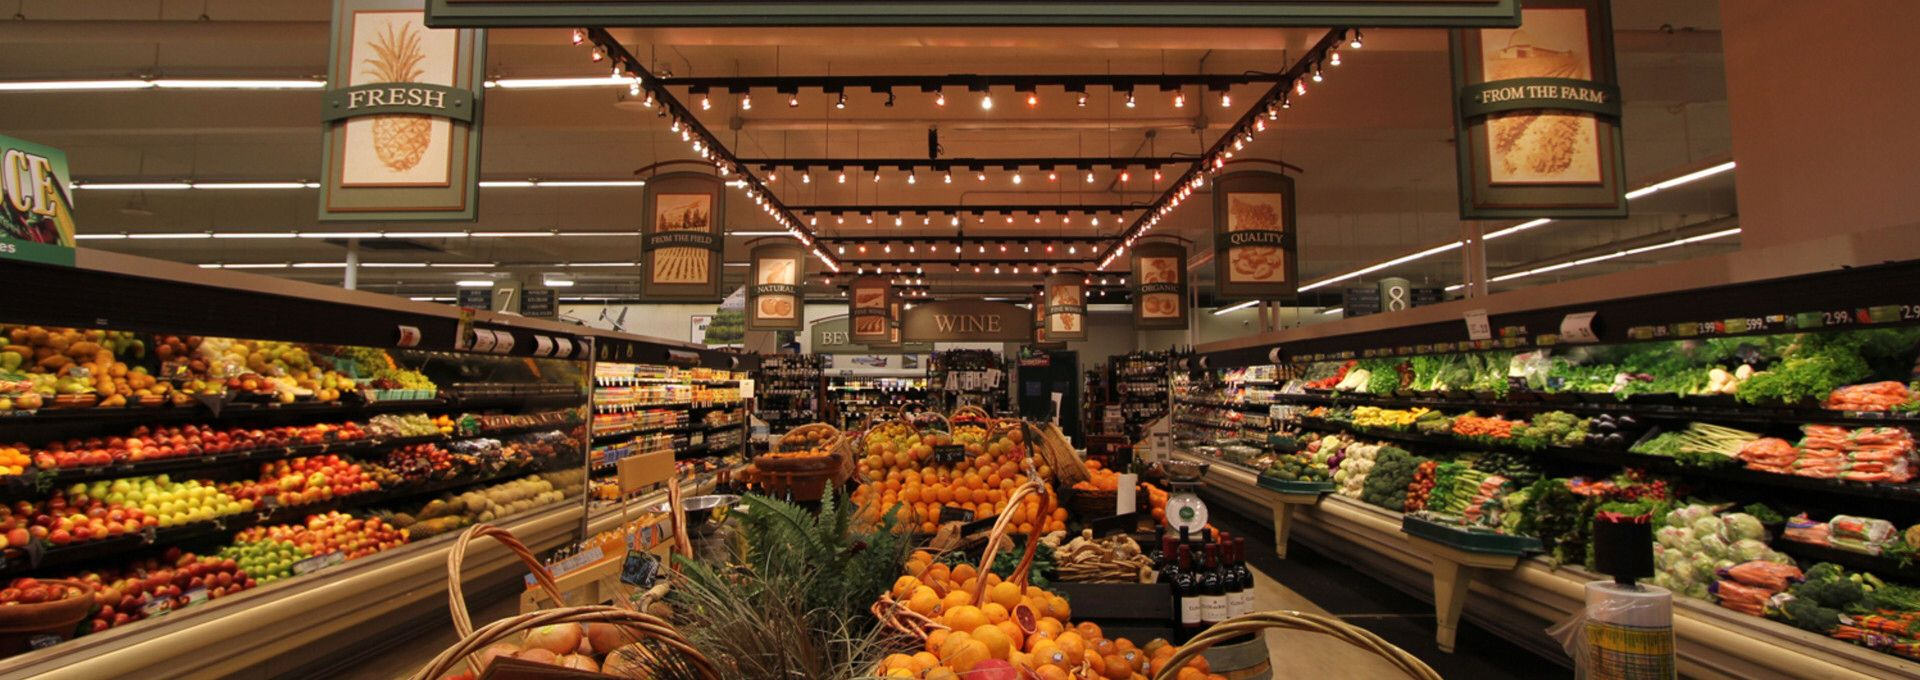 Pin By Asmiya On Jafco In 2020 Supermarket Design Grocery Store Design Home Design Software